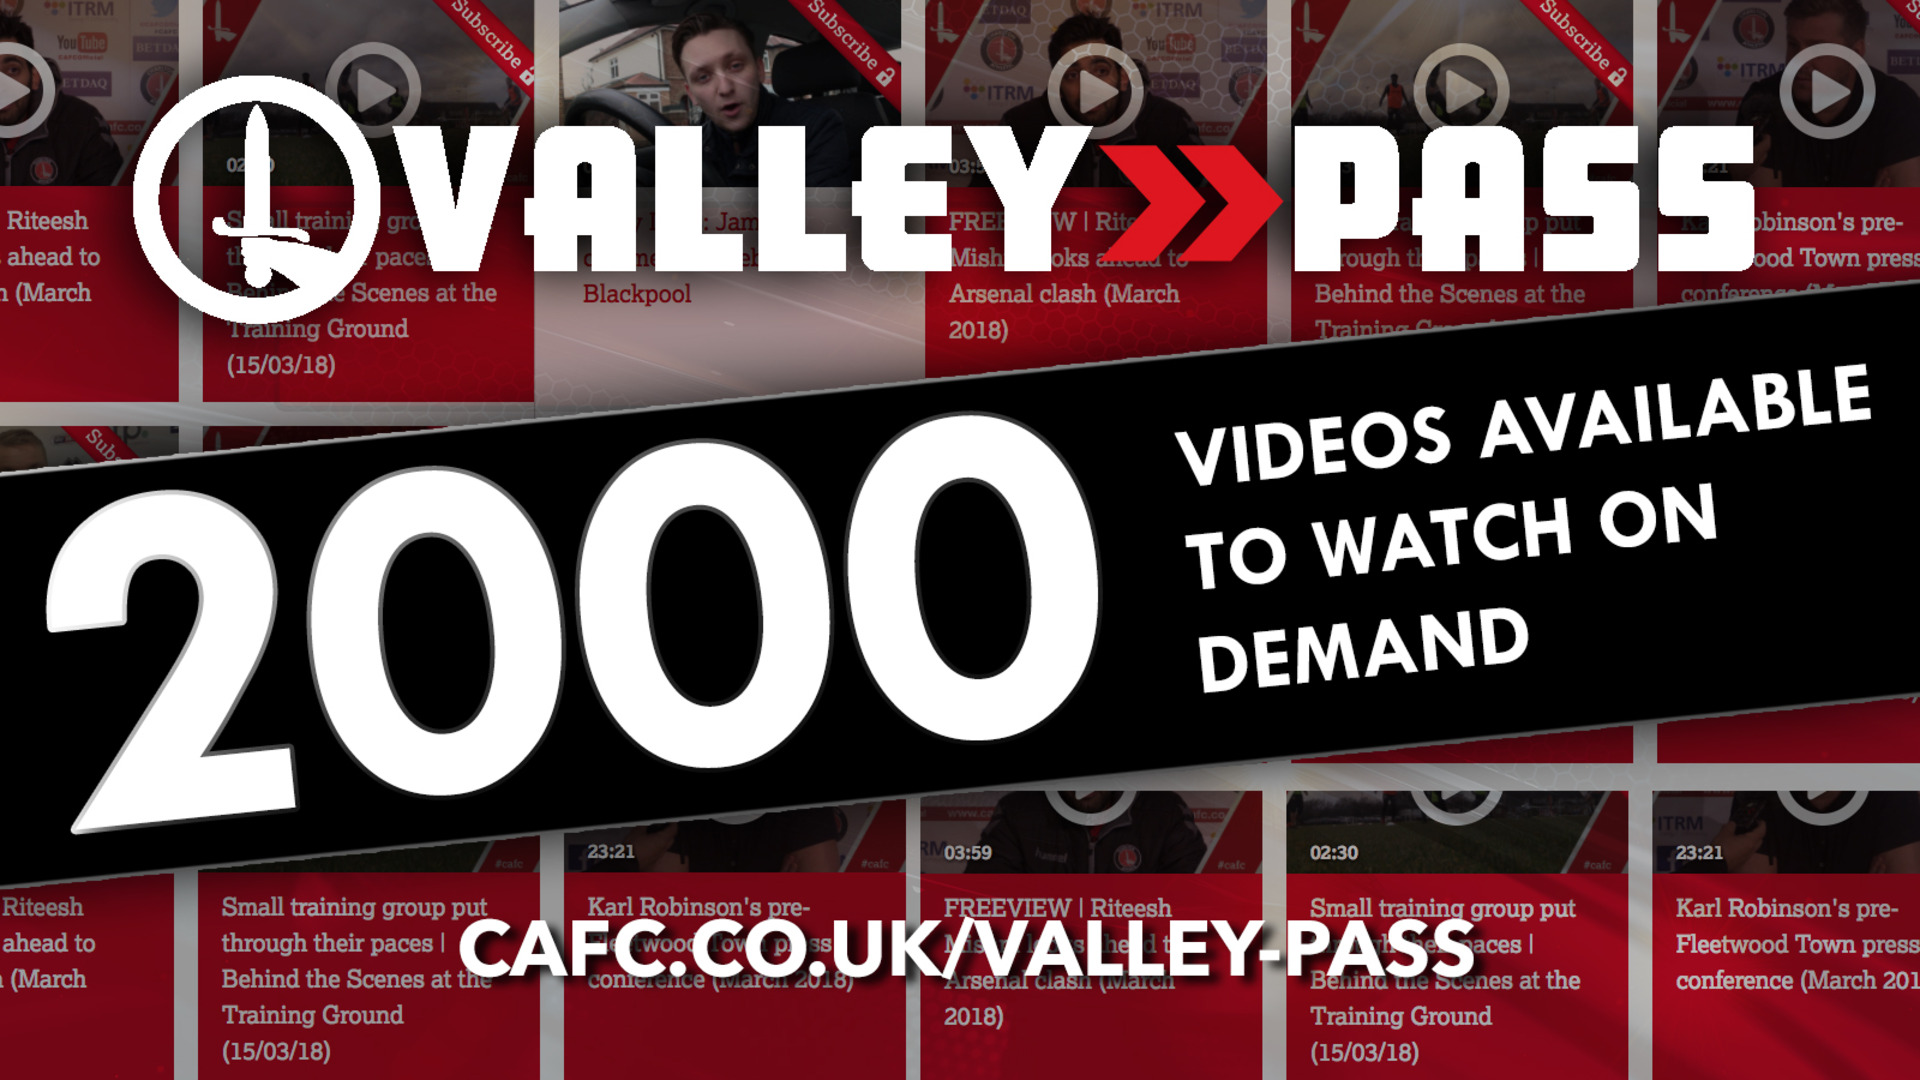 Valley Pass reaches 2000-video milestone